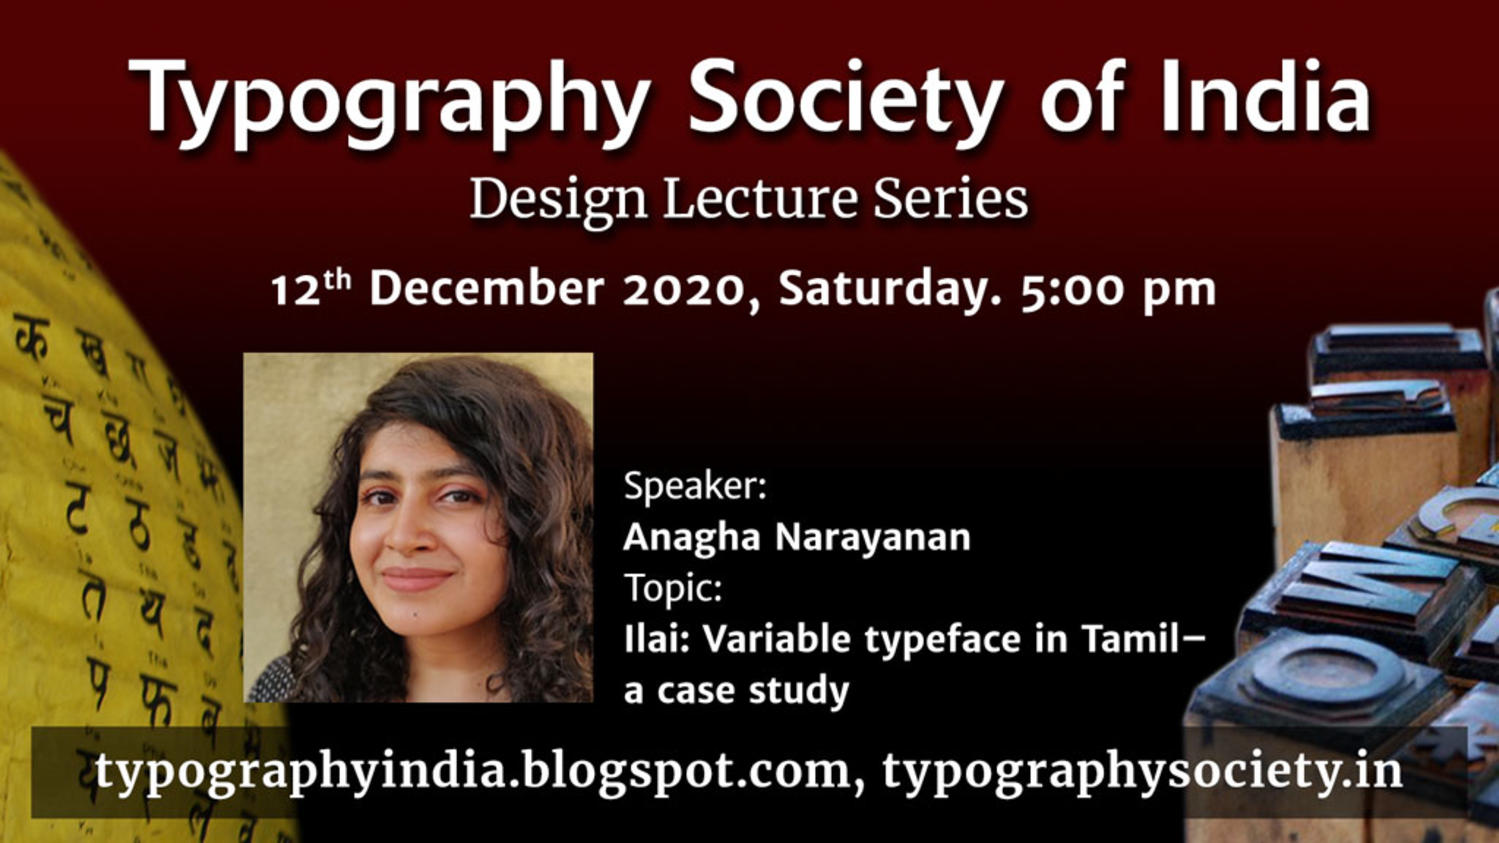 Design Lecture Series: Ilai: Variable typeface in Tamil — a case study